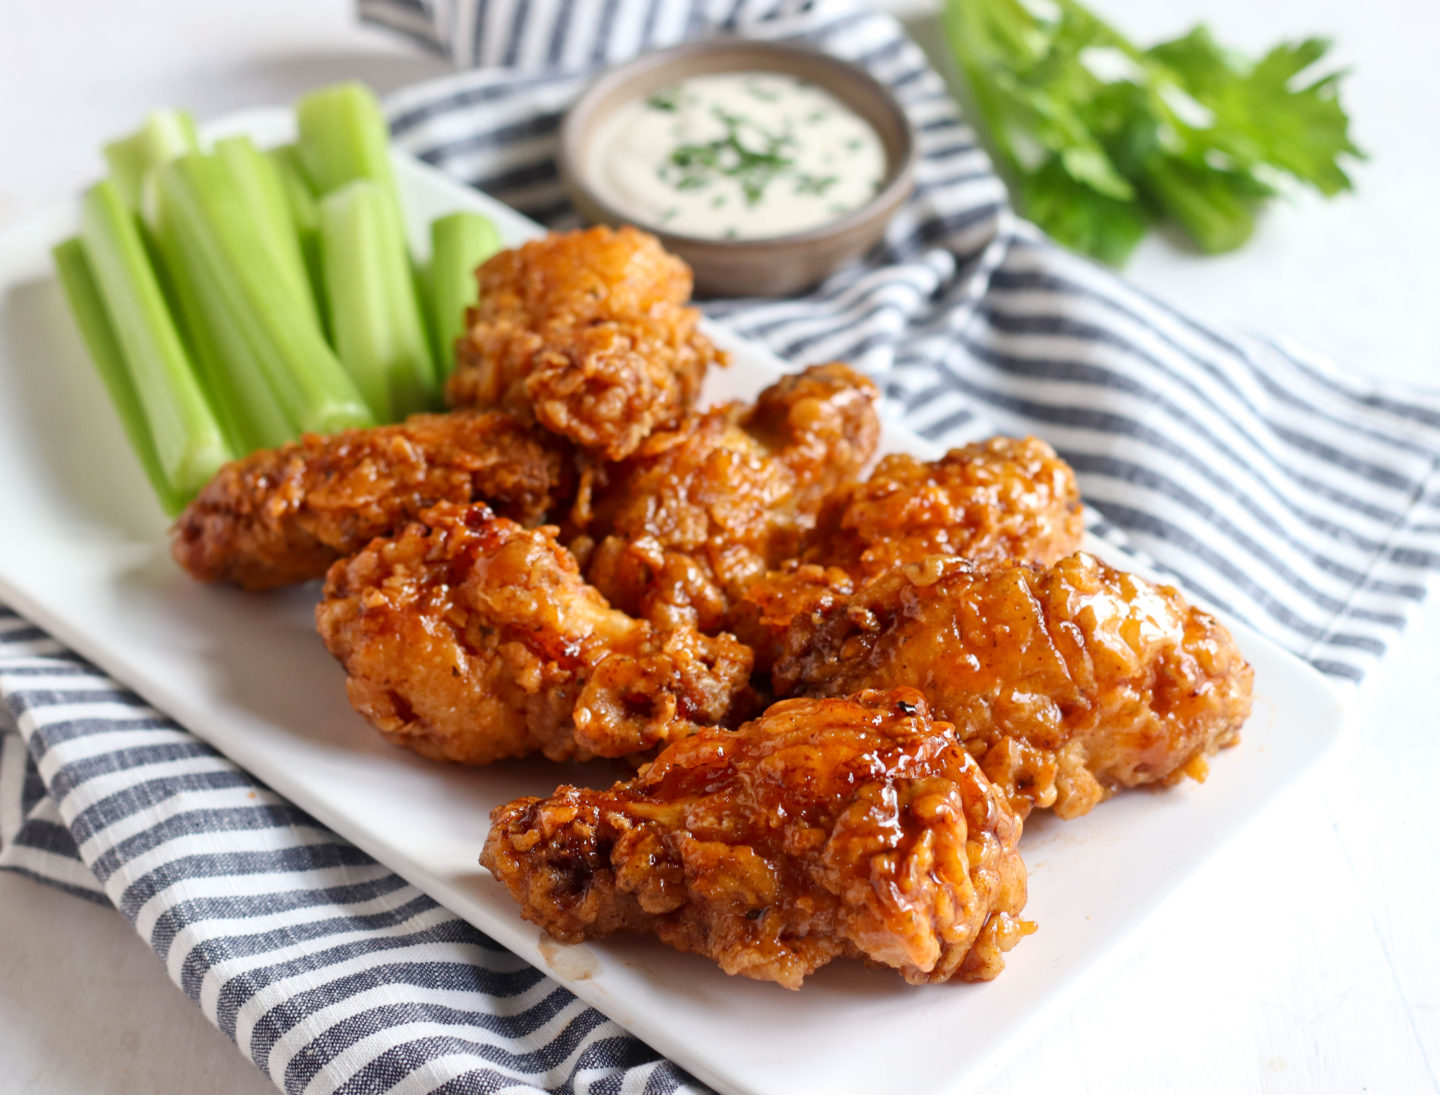 CRISPY FRIED CHICKEN WINGS WITH HOT HONEY SAUCE